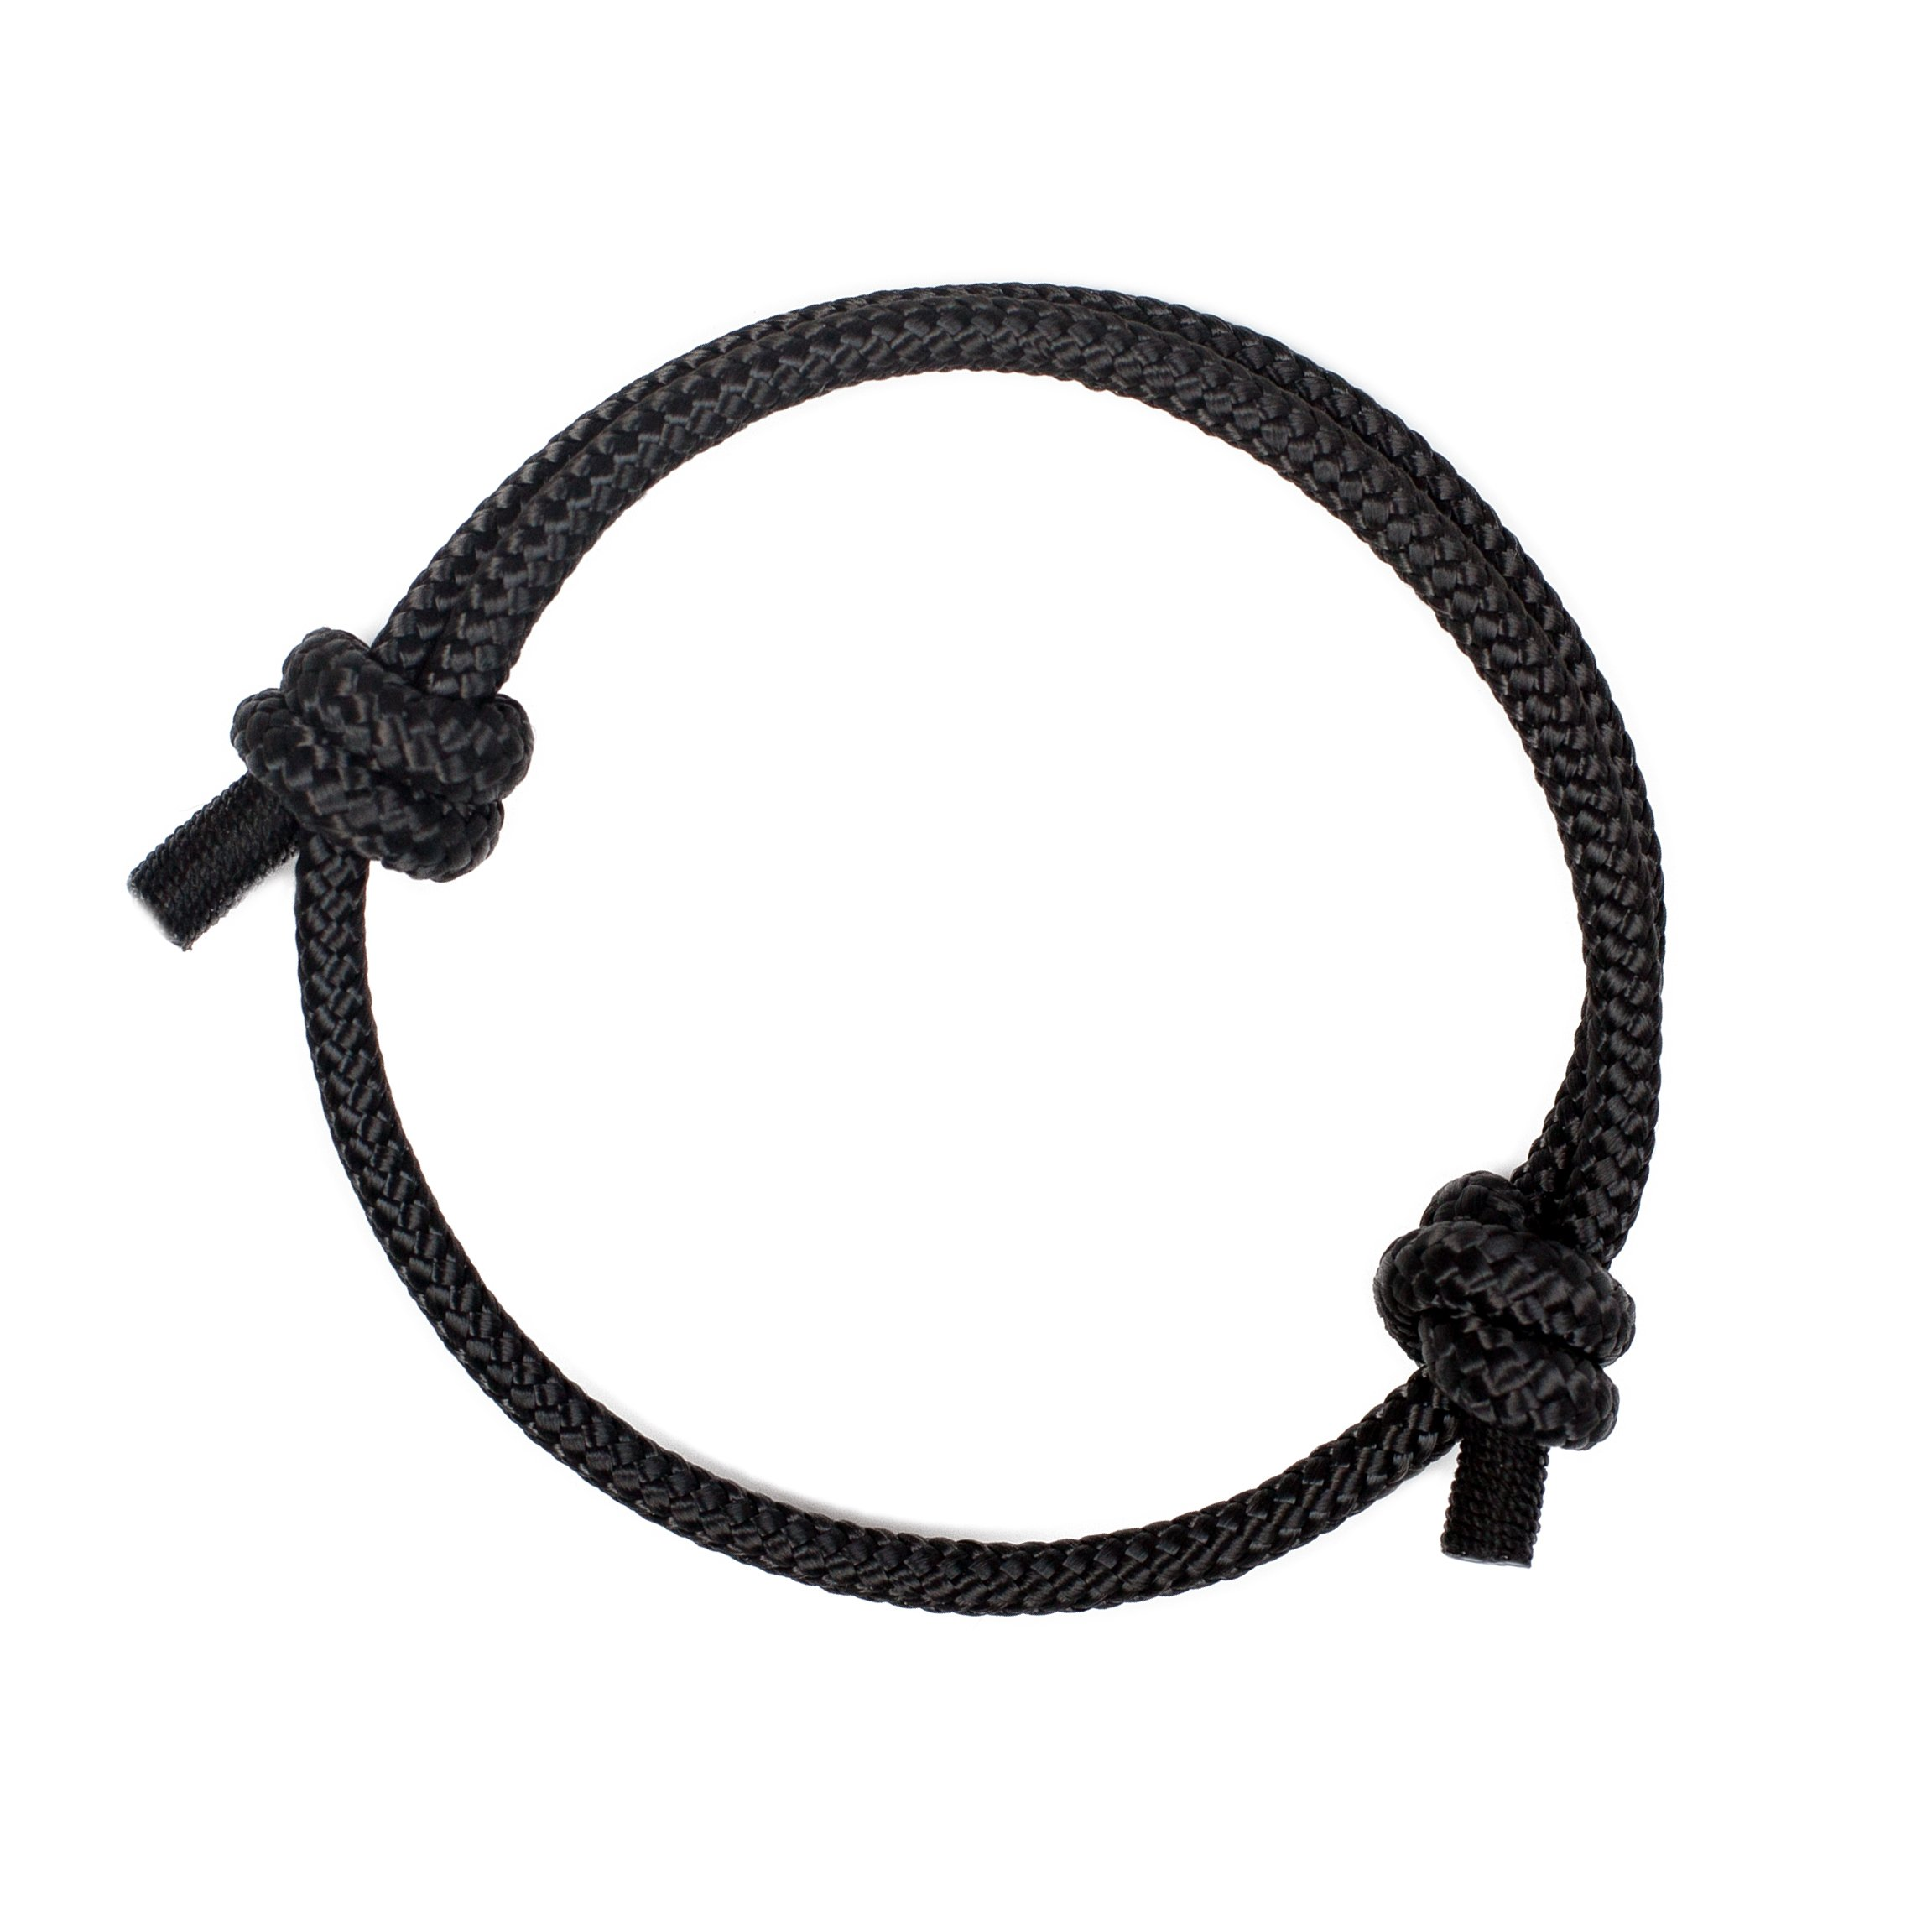 Highest Quality Black Braided Bracelet for Stylish Women